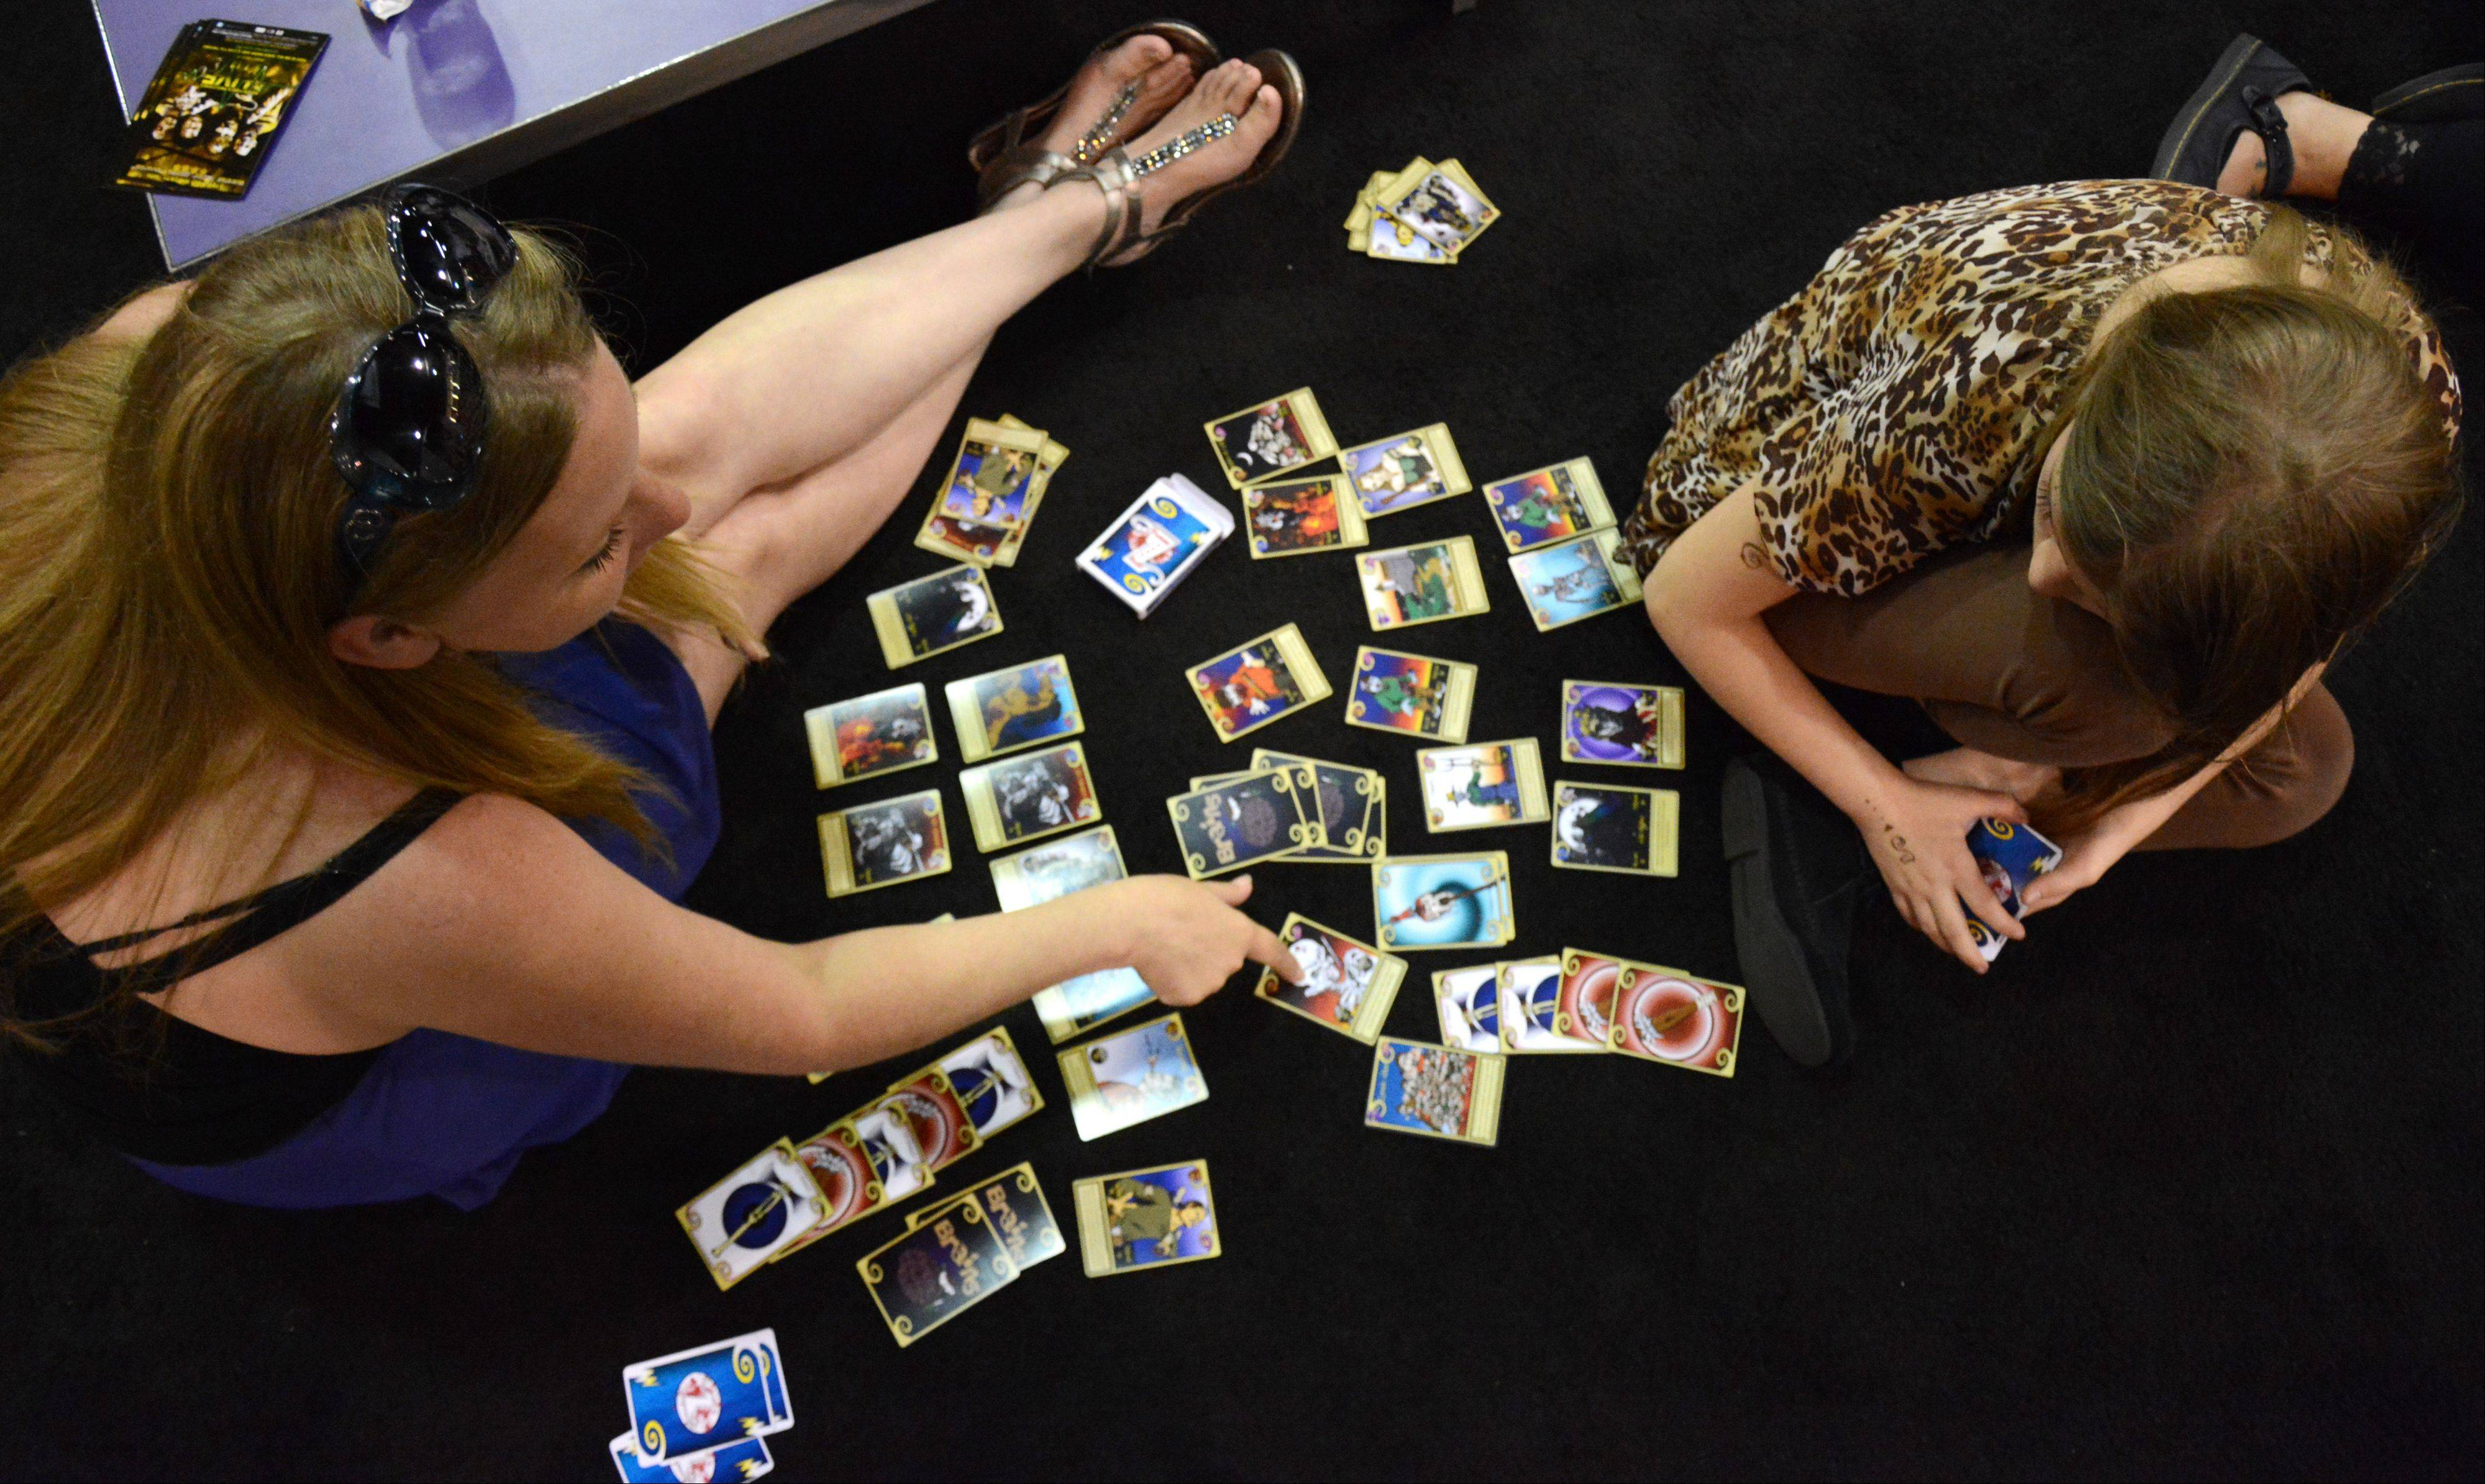 Christi Blais, left, of Rockford, and daughter Justice Sweeney, 10, play a game of Zombits during Wizard World Chicago Comic Con in Rosemont Sunday.